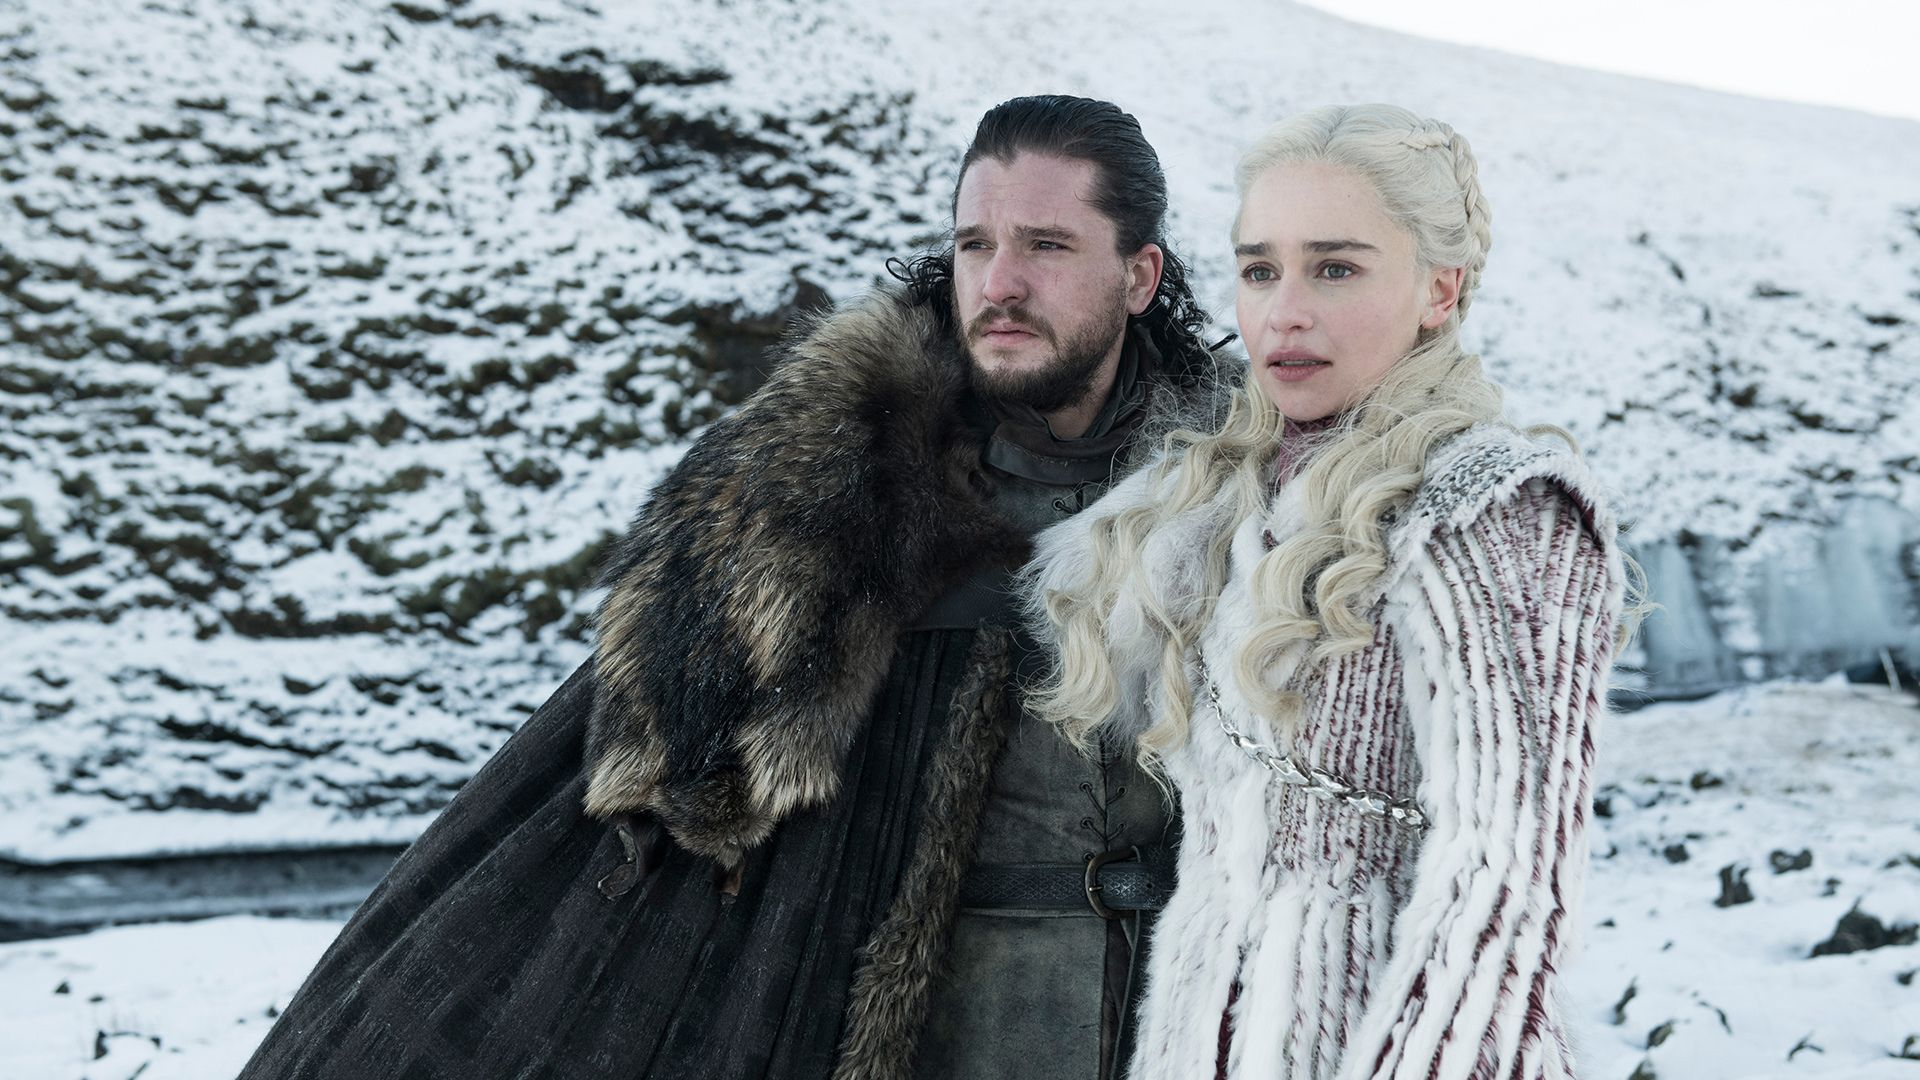 'Game of Thrones' Dialogue Data Reveals How Little Characters Spoke in Later Seasons